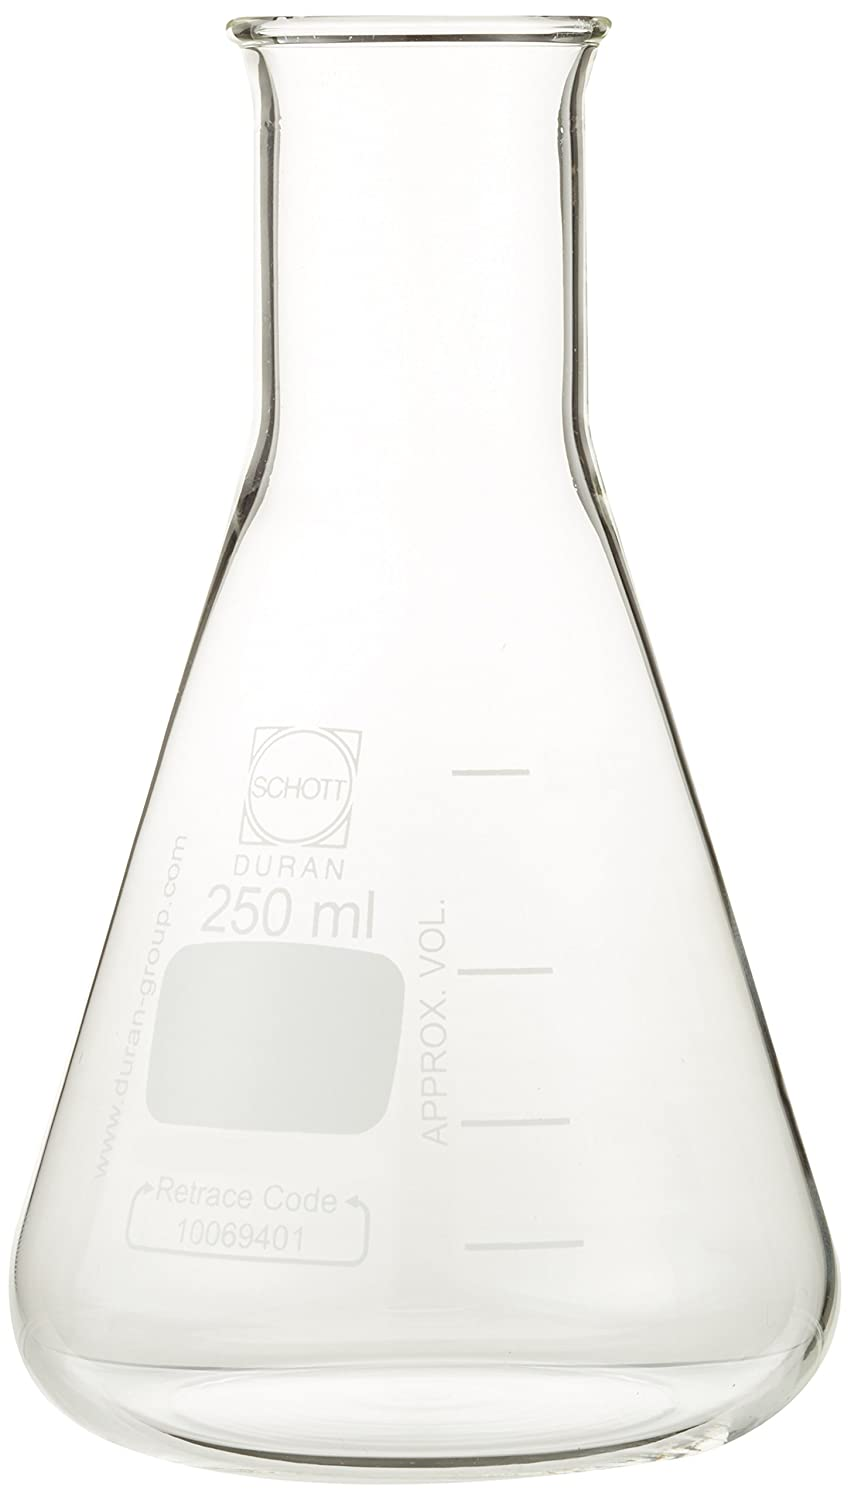 DURAN 212163605 Erlenmeyer Flask, Narrow Neck with Graduation, 250 mL (Pack of 10) DURAN Group GmbH